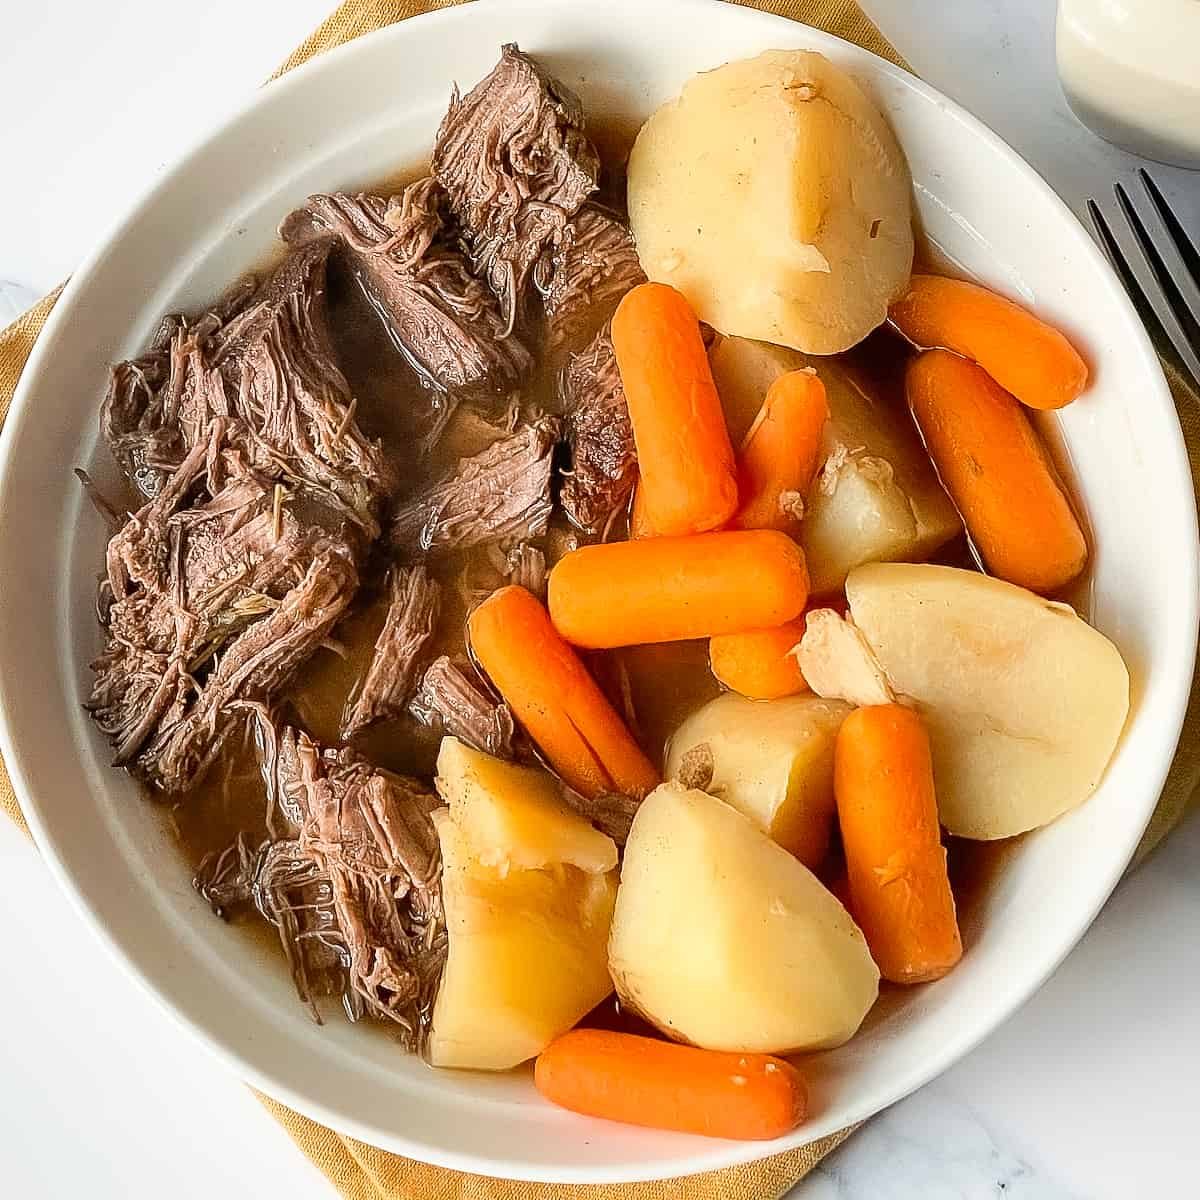 Instant pot venison roast with potatoes and carrots in a while bowl